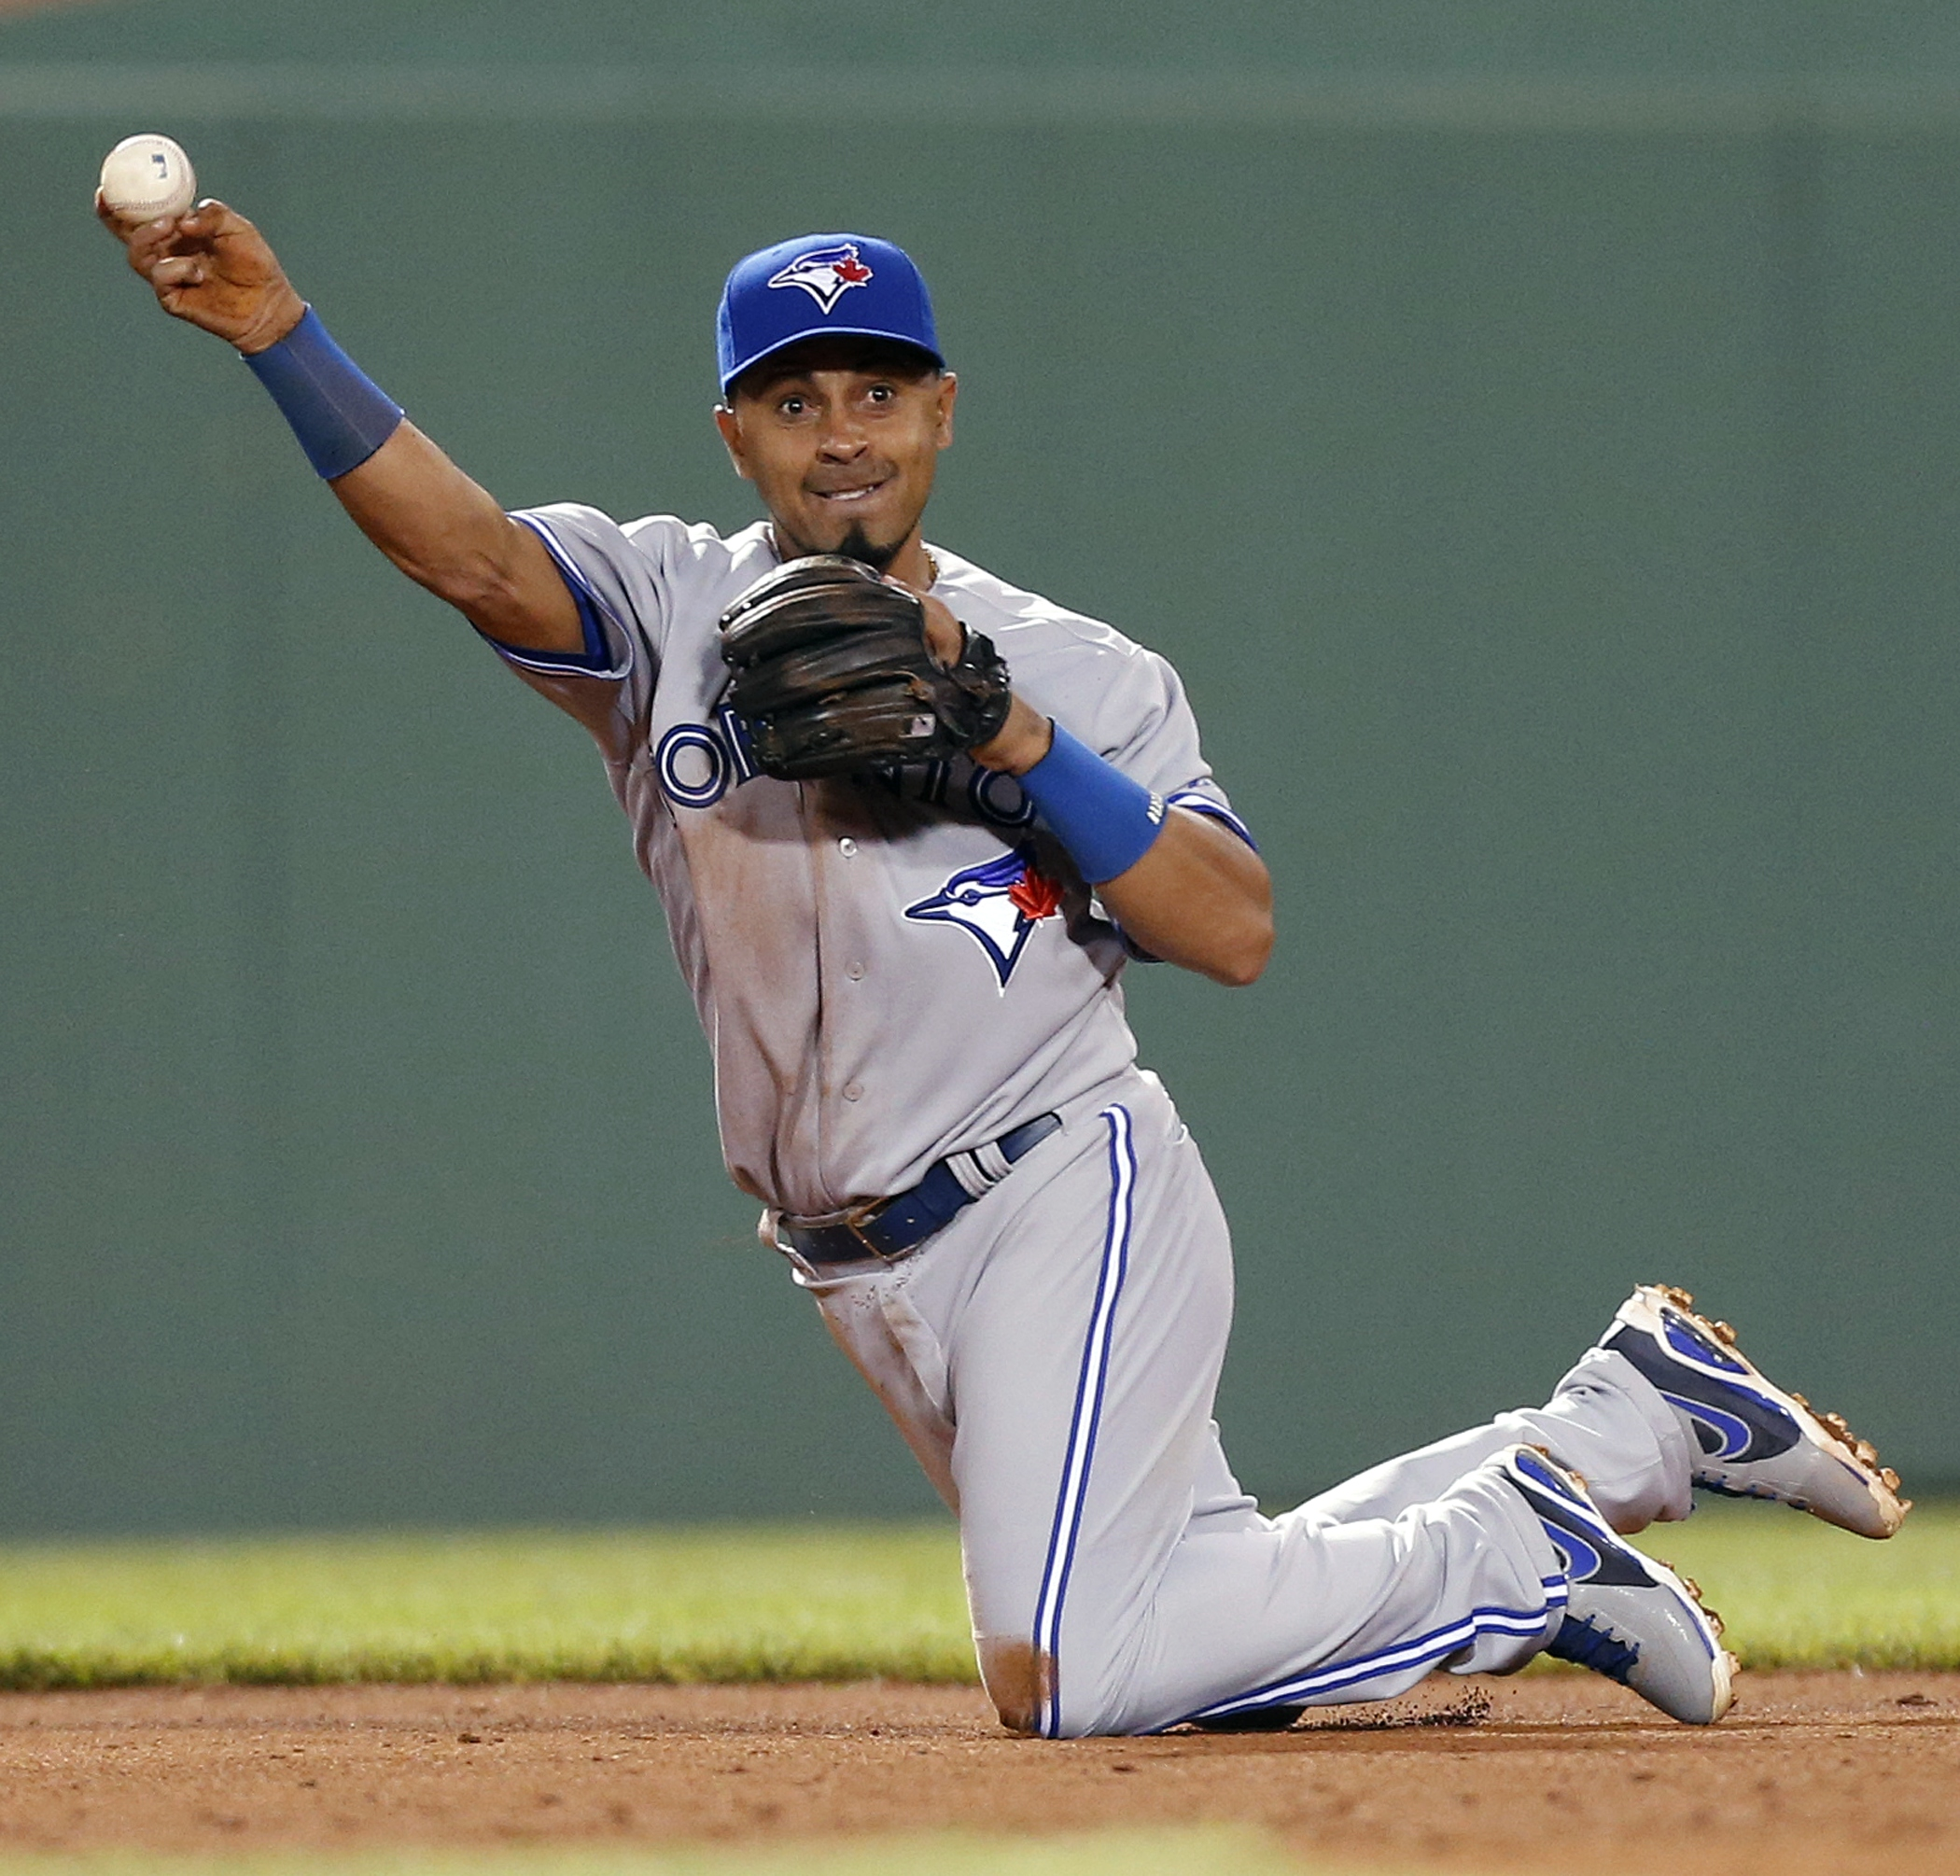 FILE - In this May 10, 2013, file photo, Toronto Blue Jays' Maicer Izturis throws to second base after fielding a single by Boston Red Sox's Dustin Pedroia in the fifth inning of a baseball game in Boston. The 35-year-old infielder, in spring training cam